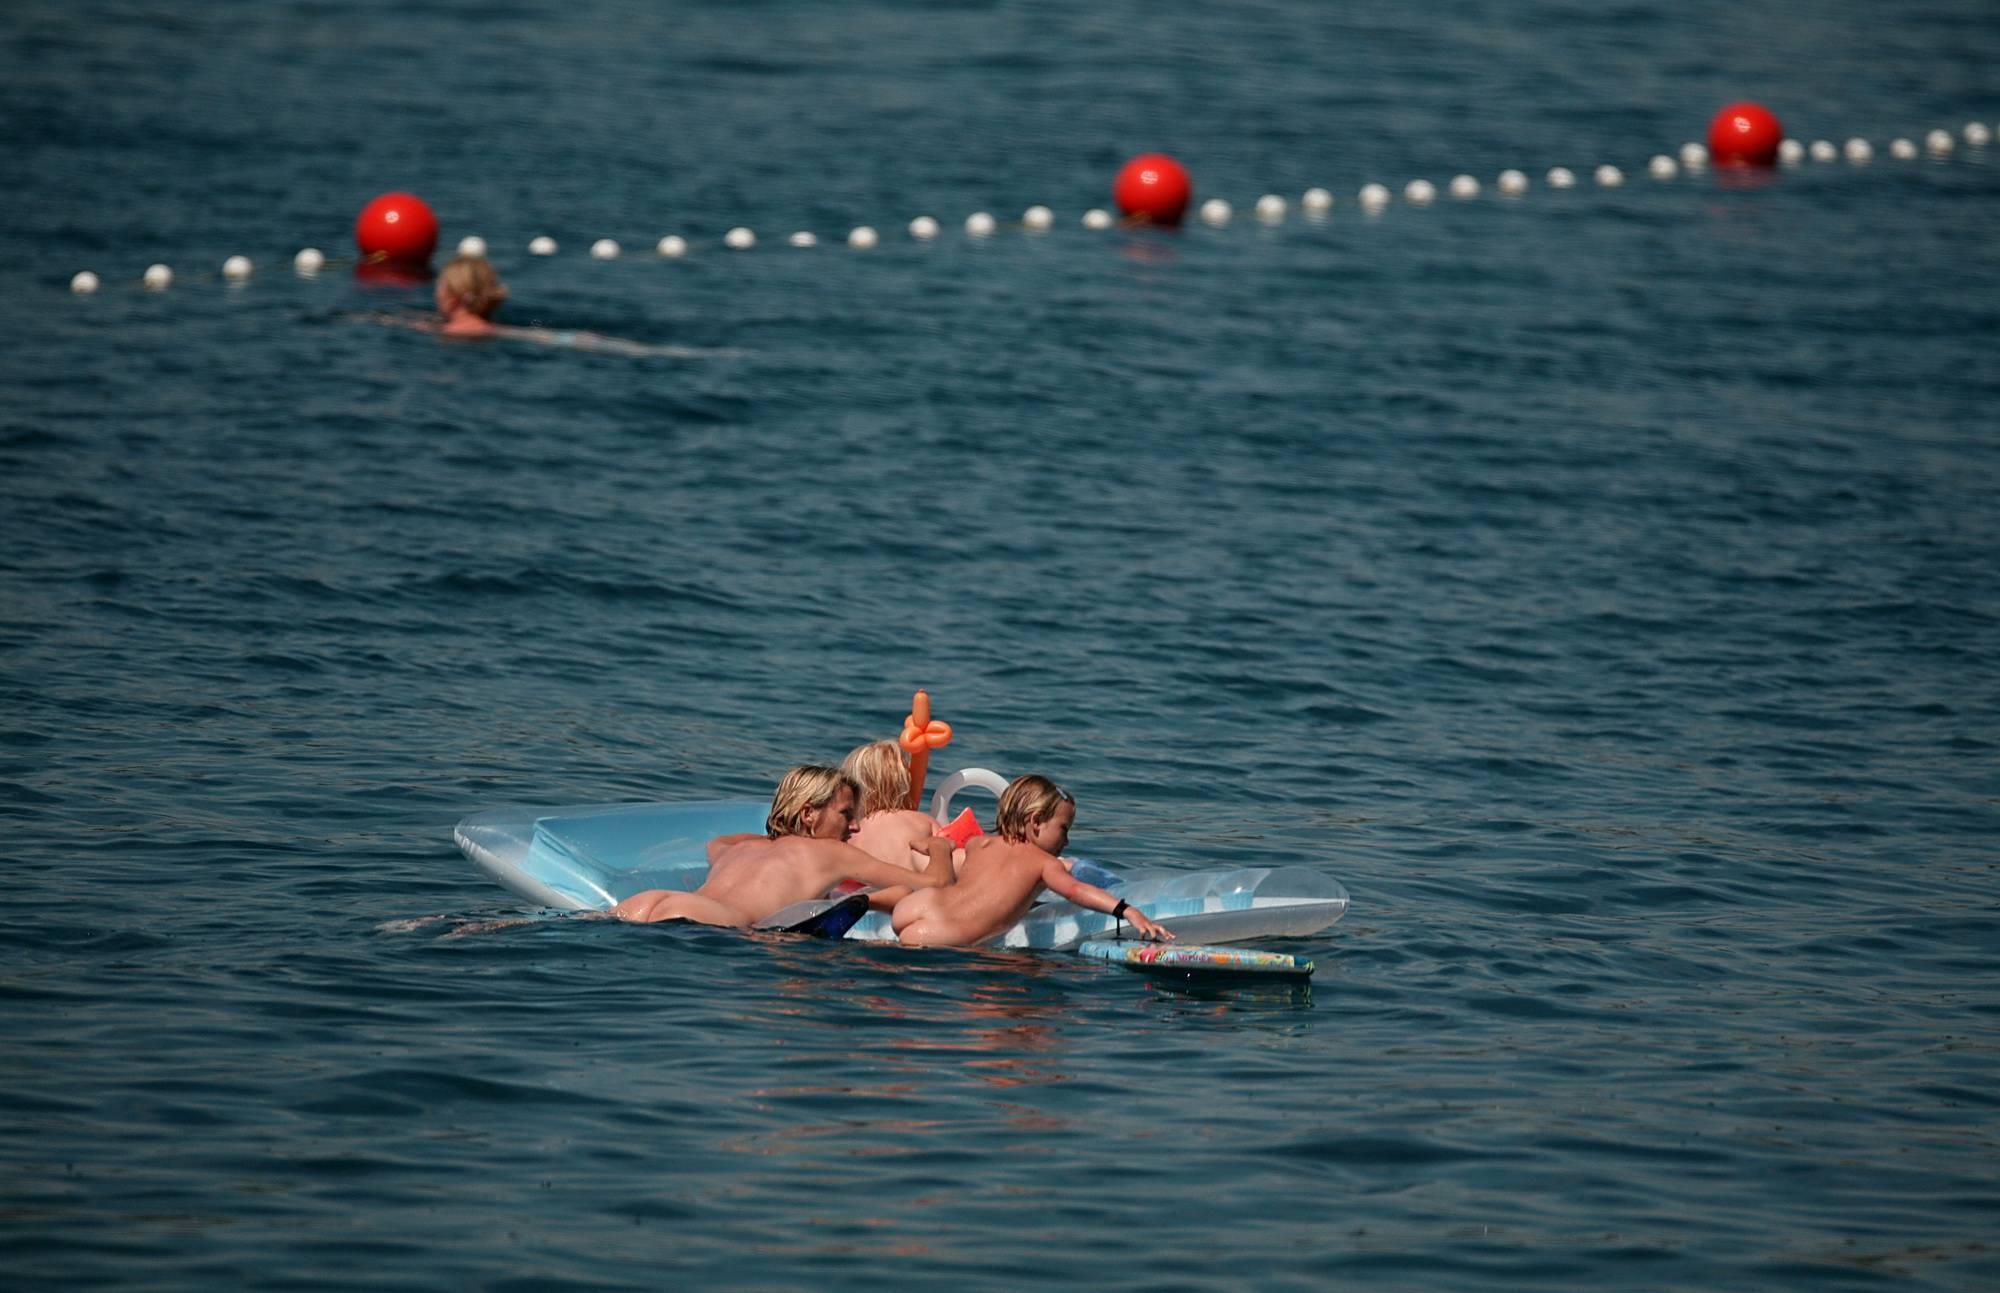 Purenudism Images-Swimming With Float Rafts - 3